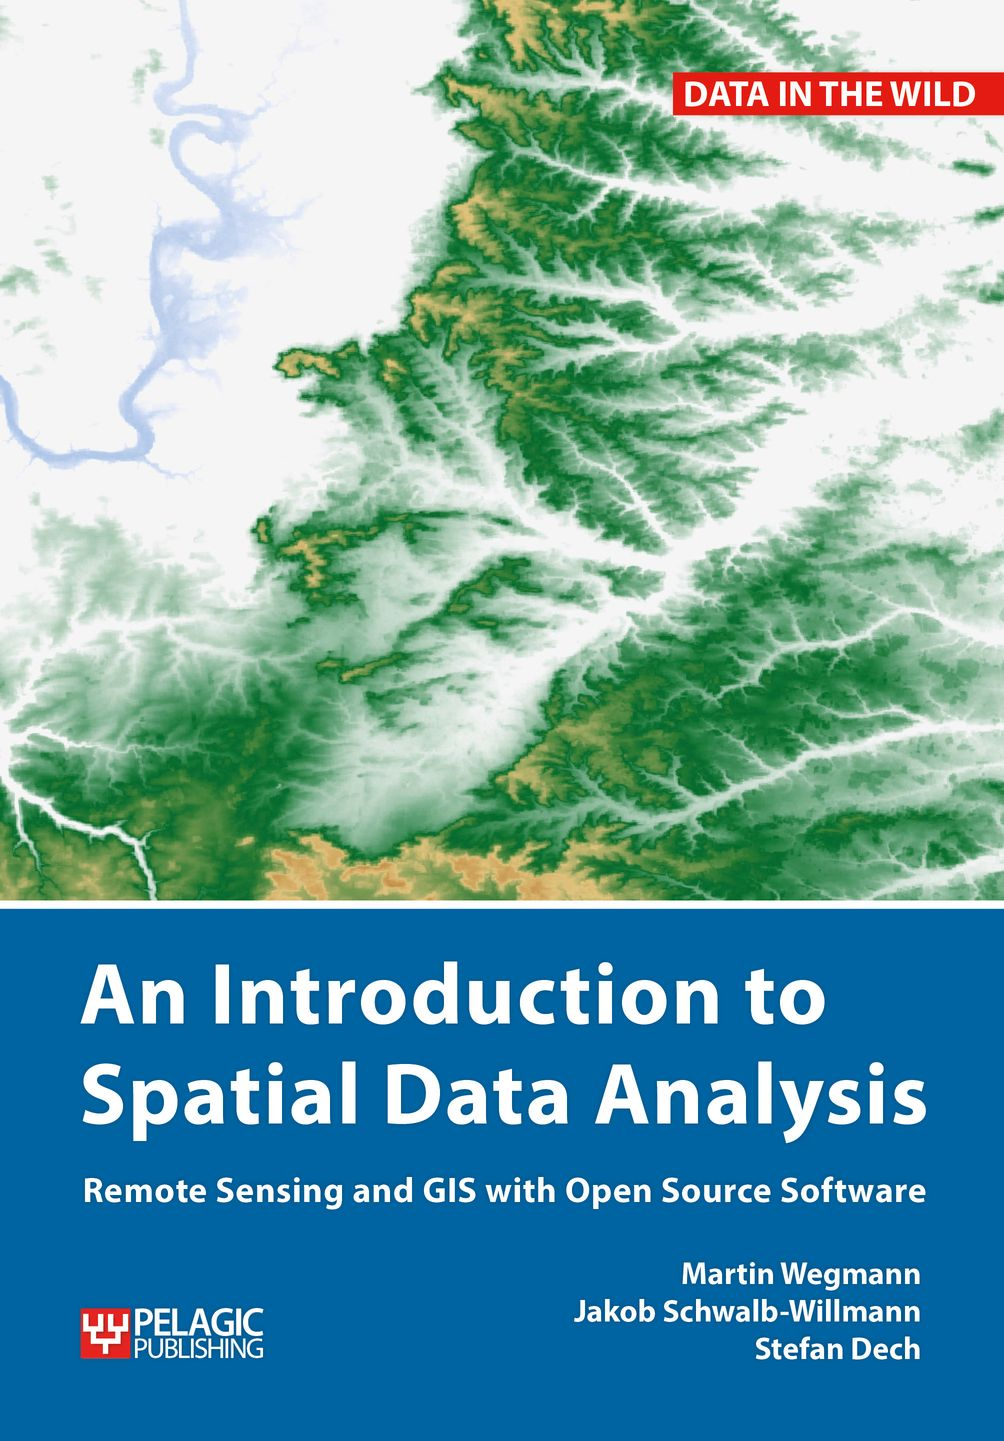 An Introduction to Spatial Data Analysis - Pelagic Publishing